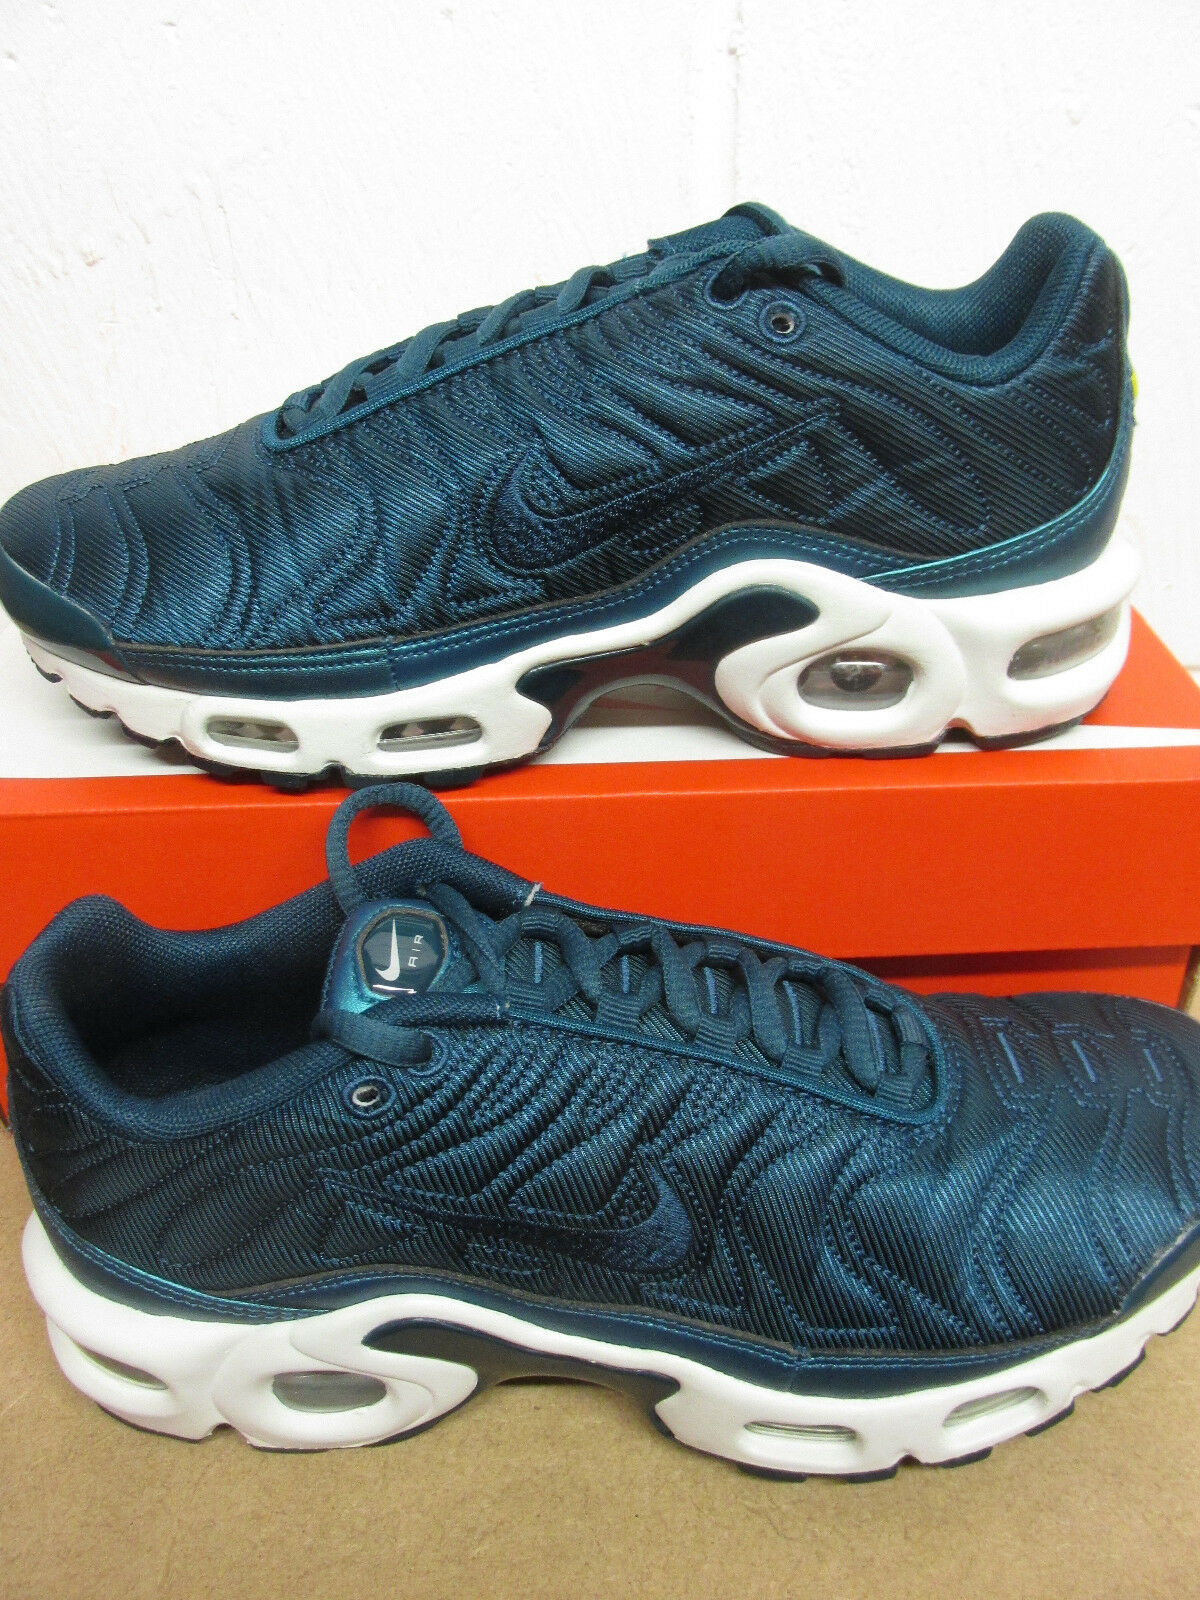 Nike Womens Air Max Plus SE womens Running Trainers 862201 901 Sneakers Shoes Seasonal clearance sale